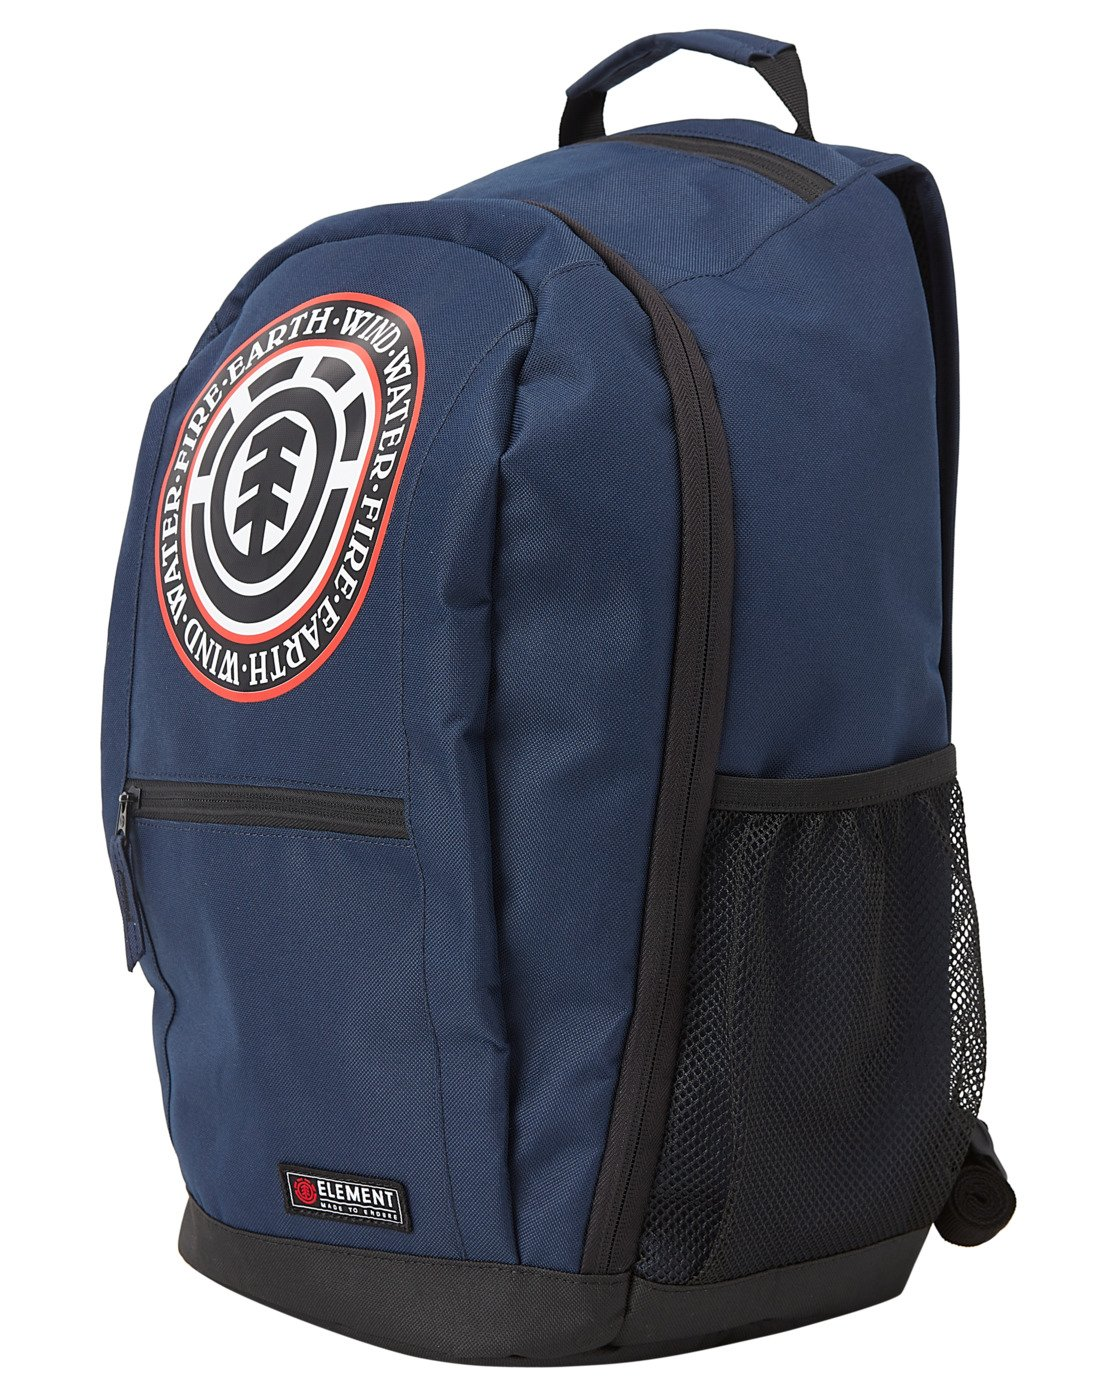 1 Nohave Backpack  ALYBP00120 Element